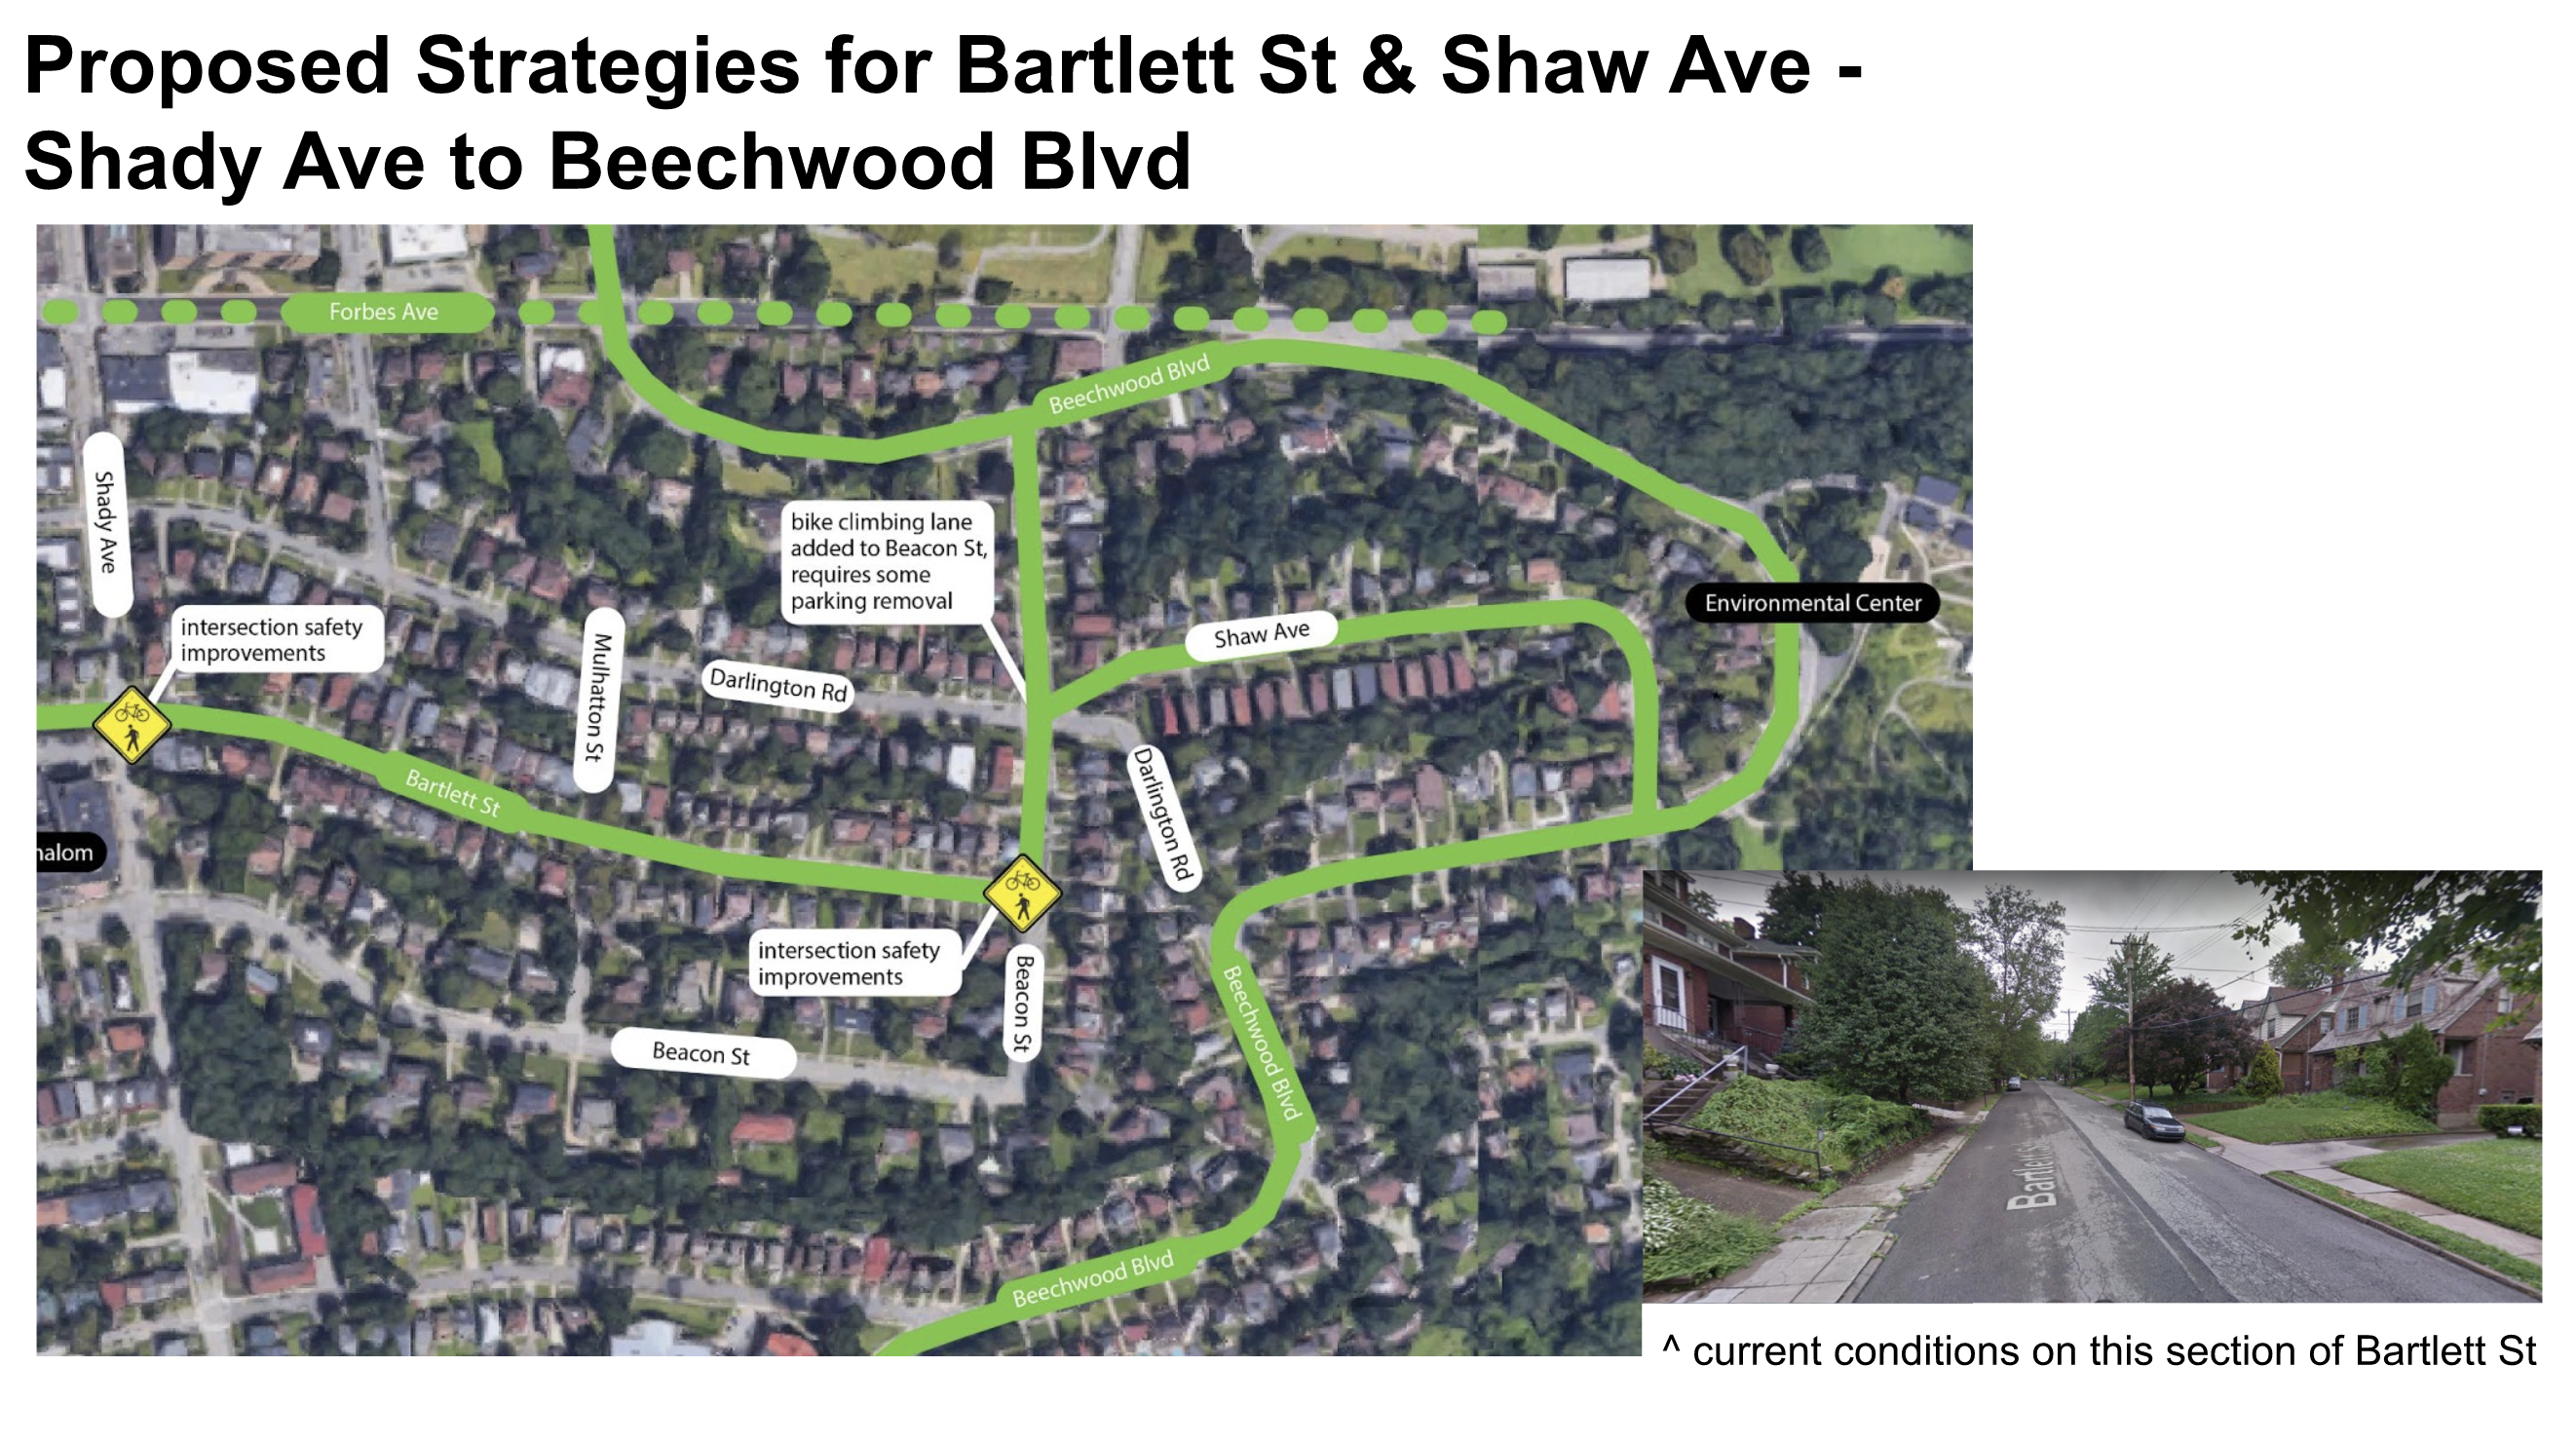 Image shows a map of the proposed bike connections along Bartlett St, Beacon St, and Shaw Ave connecting to the existing bike lanes on Beechwood Blvd